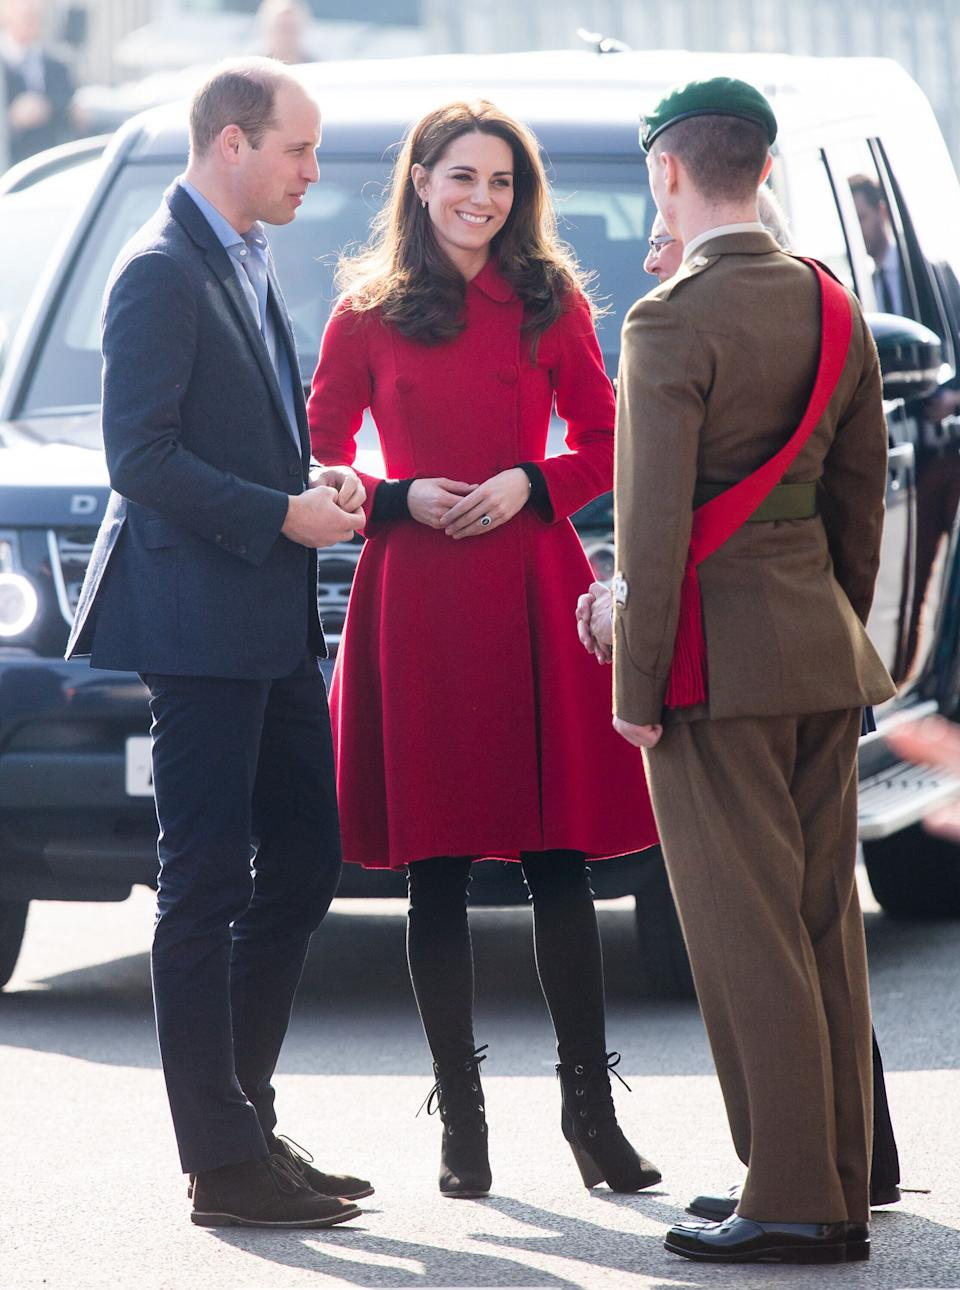 Kate and William, Duke of Cambridge, visit during their visit to the National Stadium on Feb. 27.